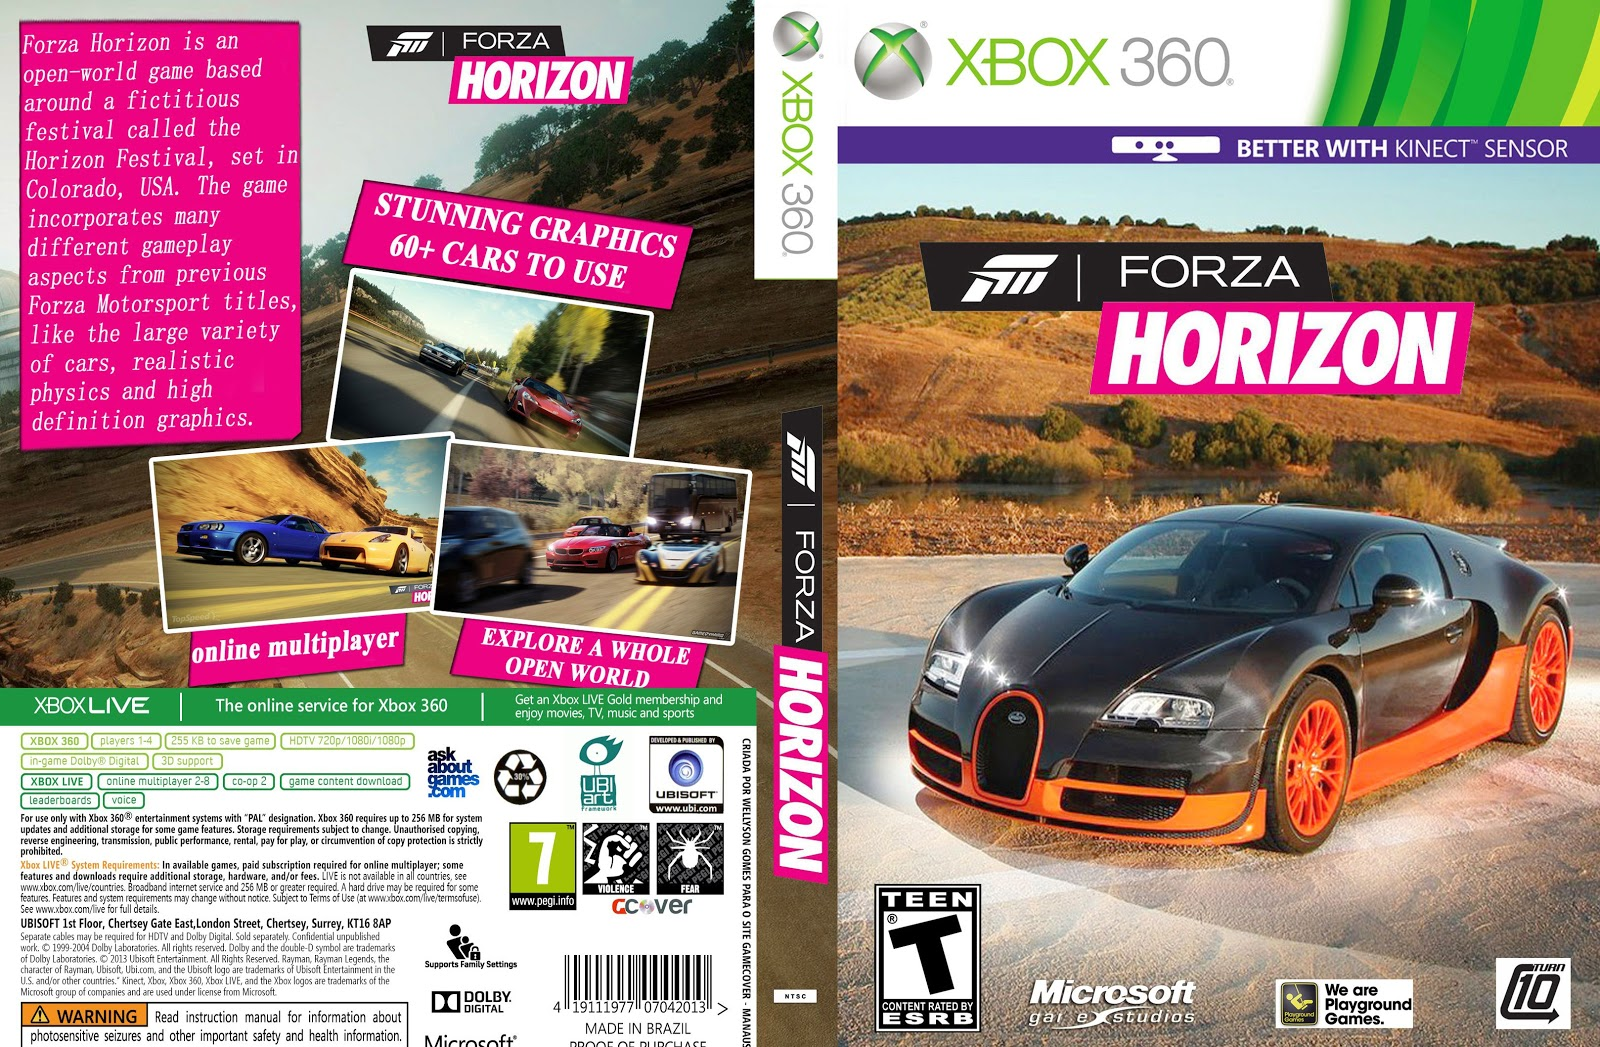 capa forza horizon xbox 360 gamecover capas customizadas para dvd e bluray. Black Bedroom Furniture Sets. Home Design Ideas